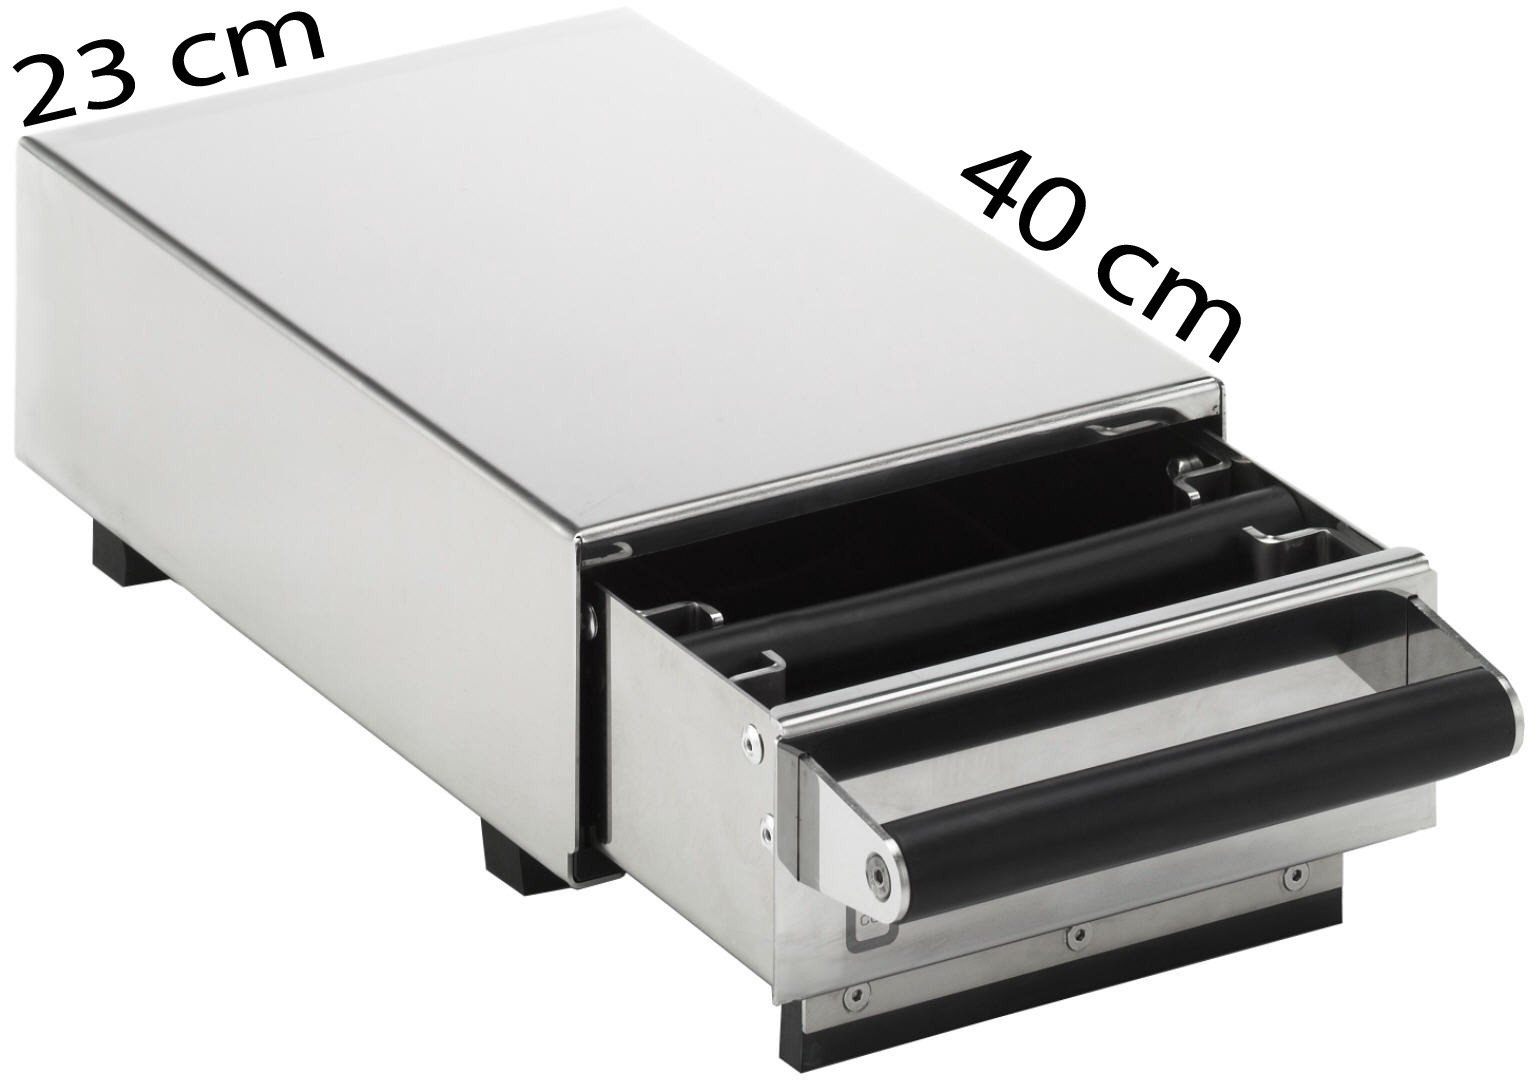 Knock Box Drawer Exclusive ST, Stainless Steel Knock Out Drawer Stand Alone under the Espresso Grinder